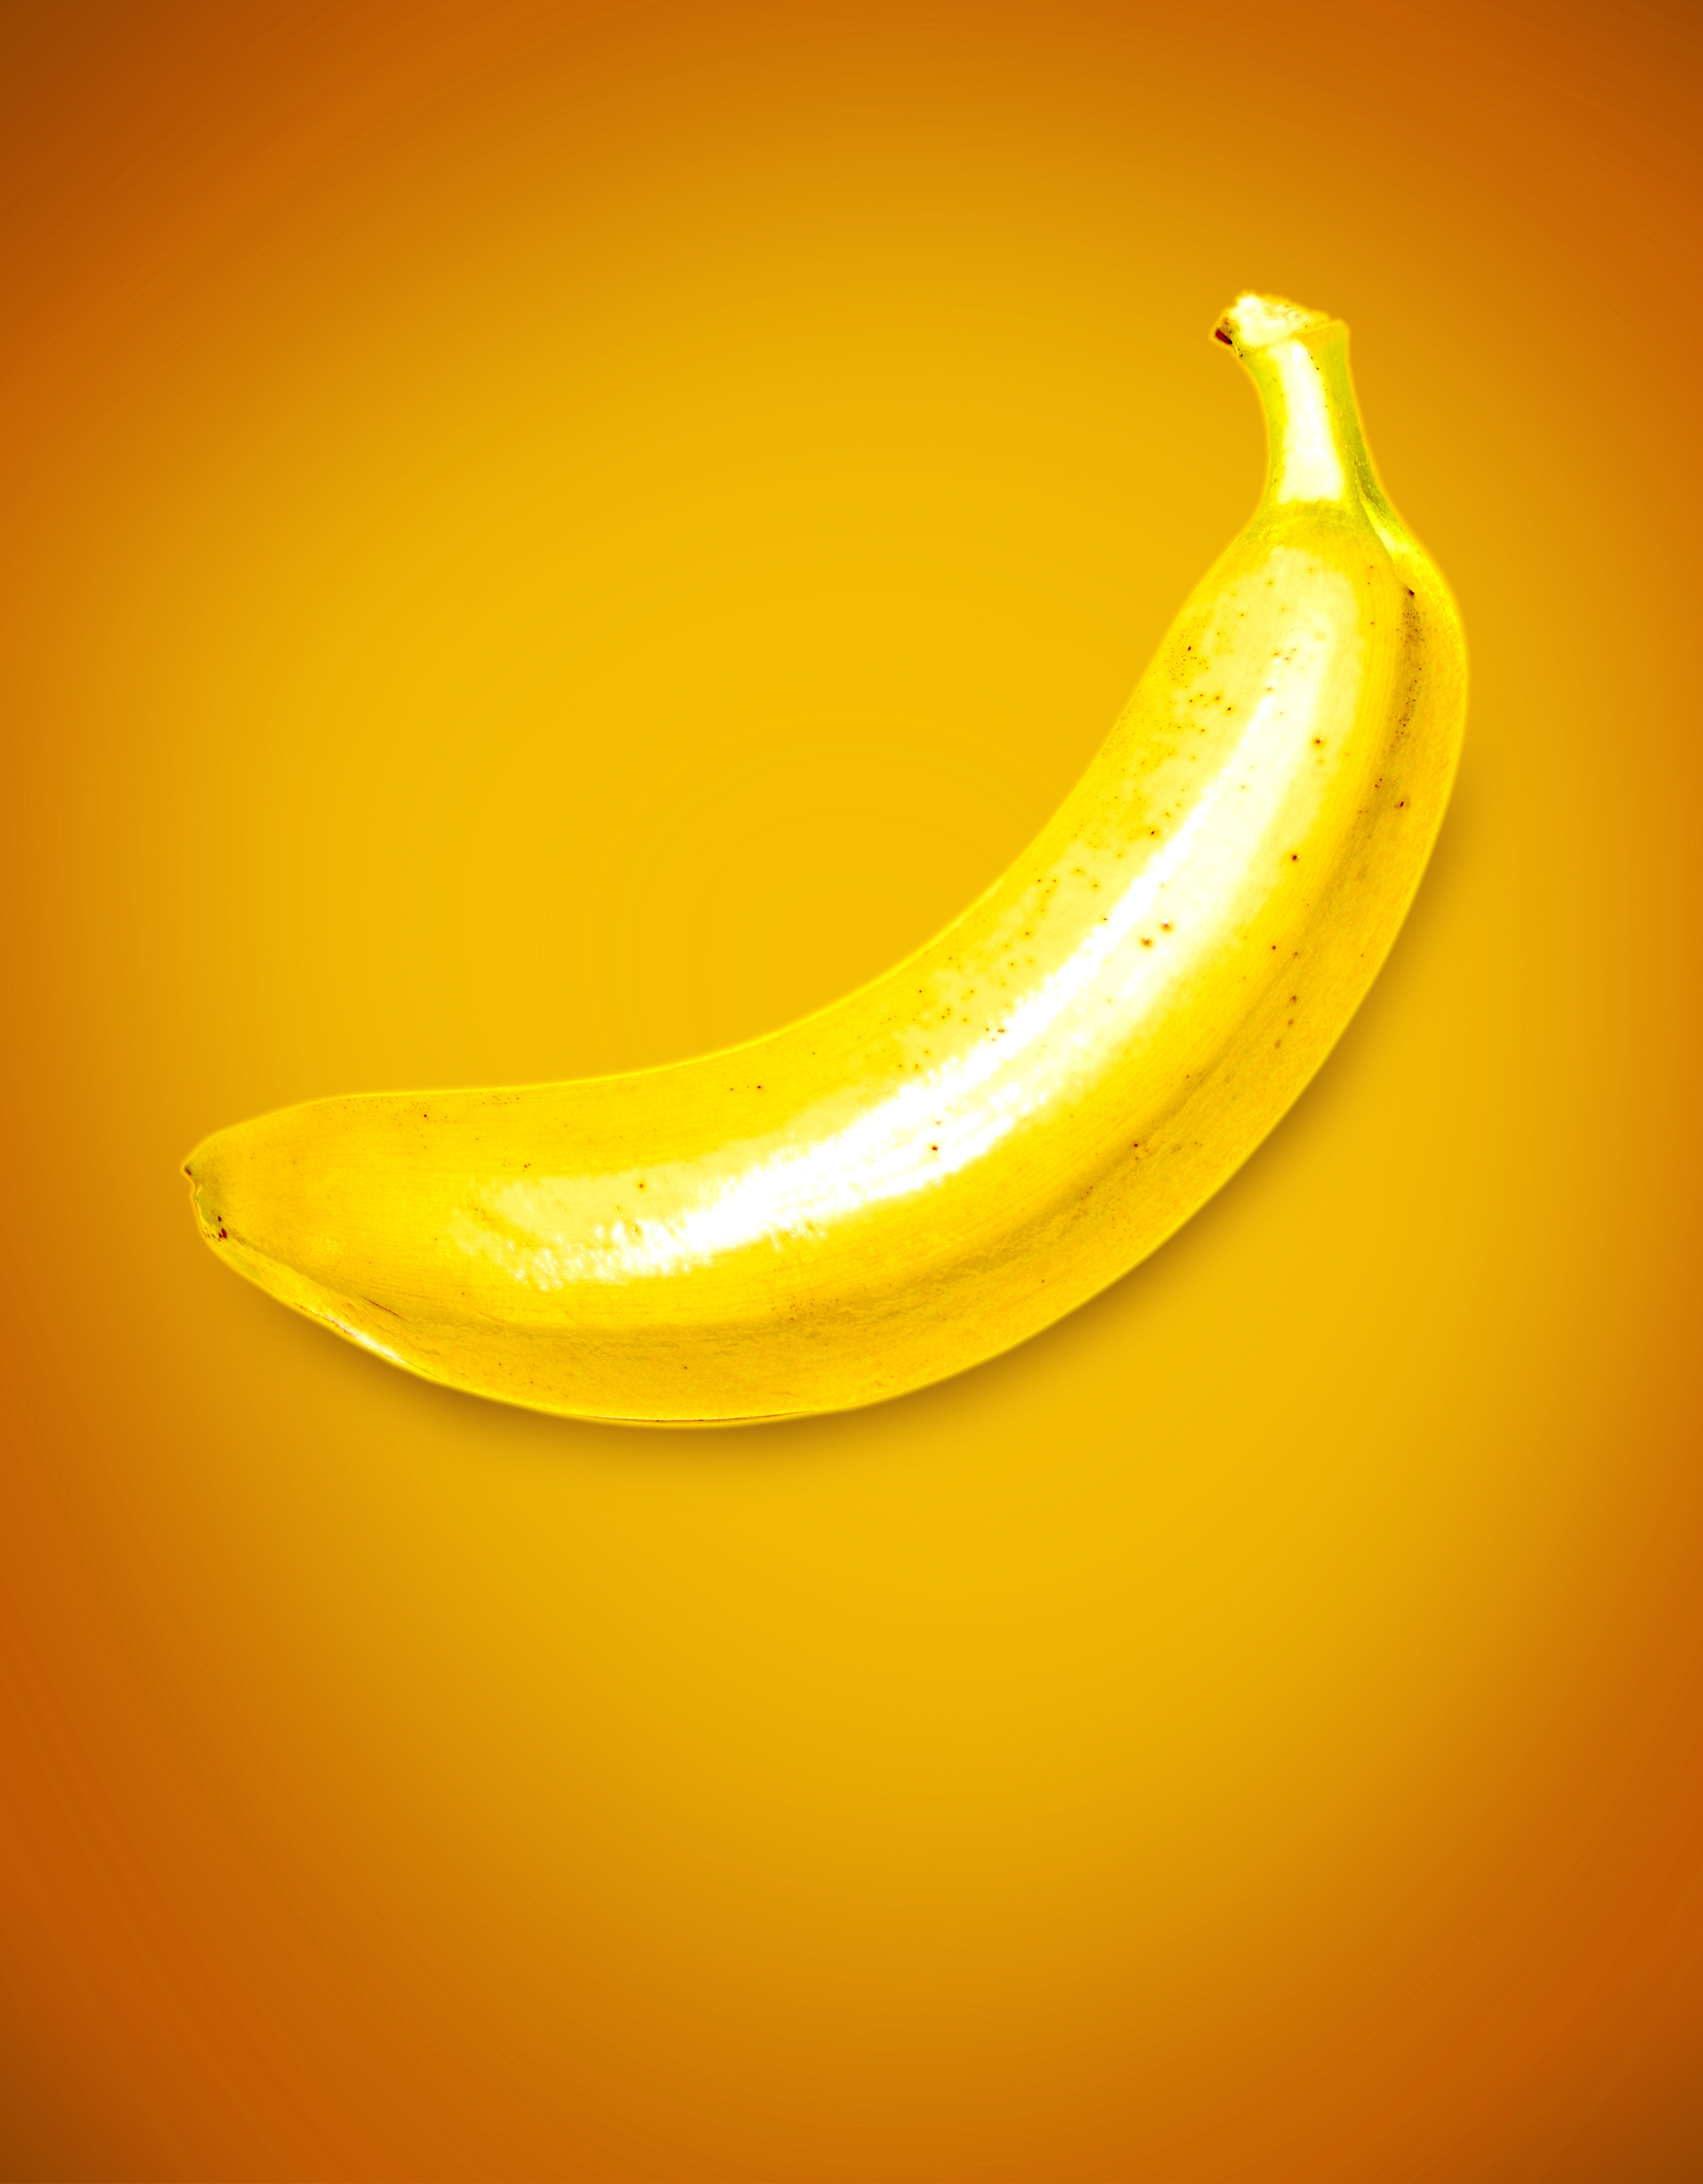 Yellow (Banana) on Yellow (Background), Agriculture, Object, Pile, Peel, HQ Photo